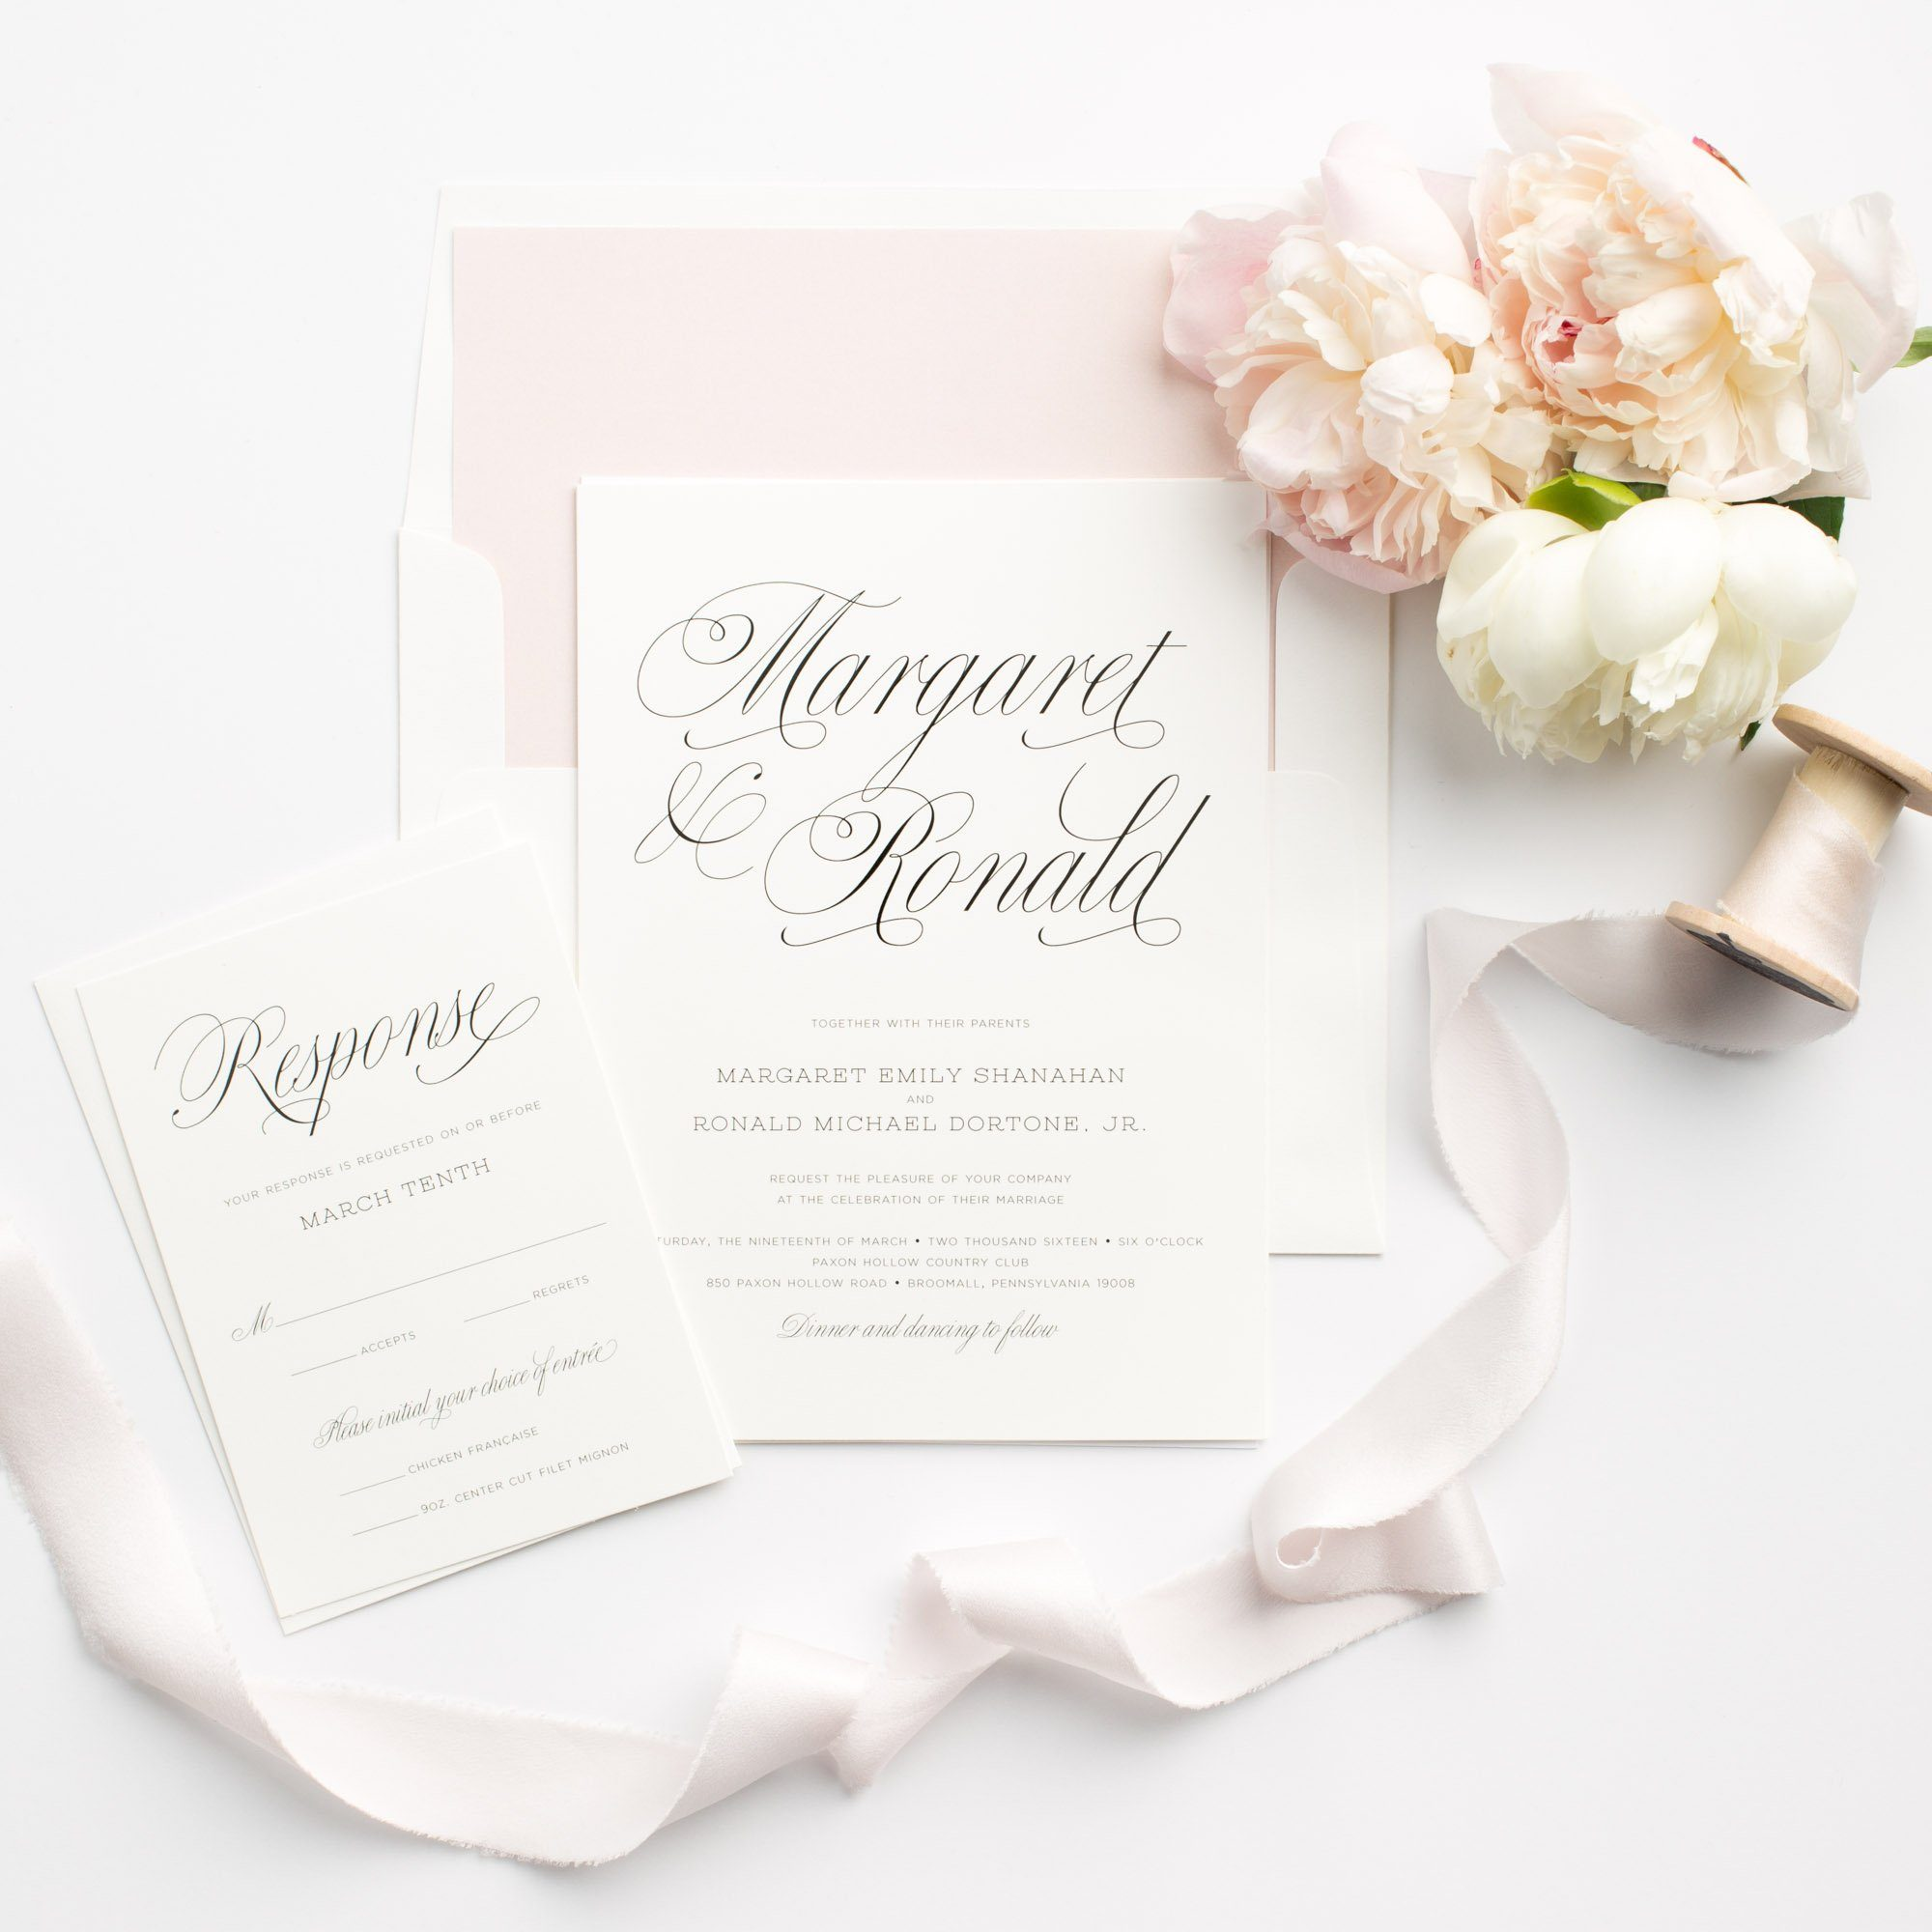 Garden Wedding Invitations in Blush Pink and Gray